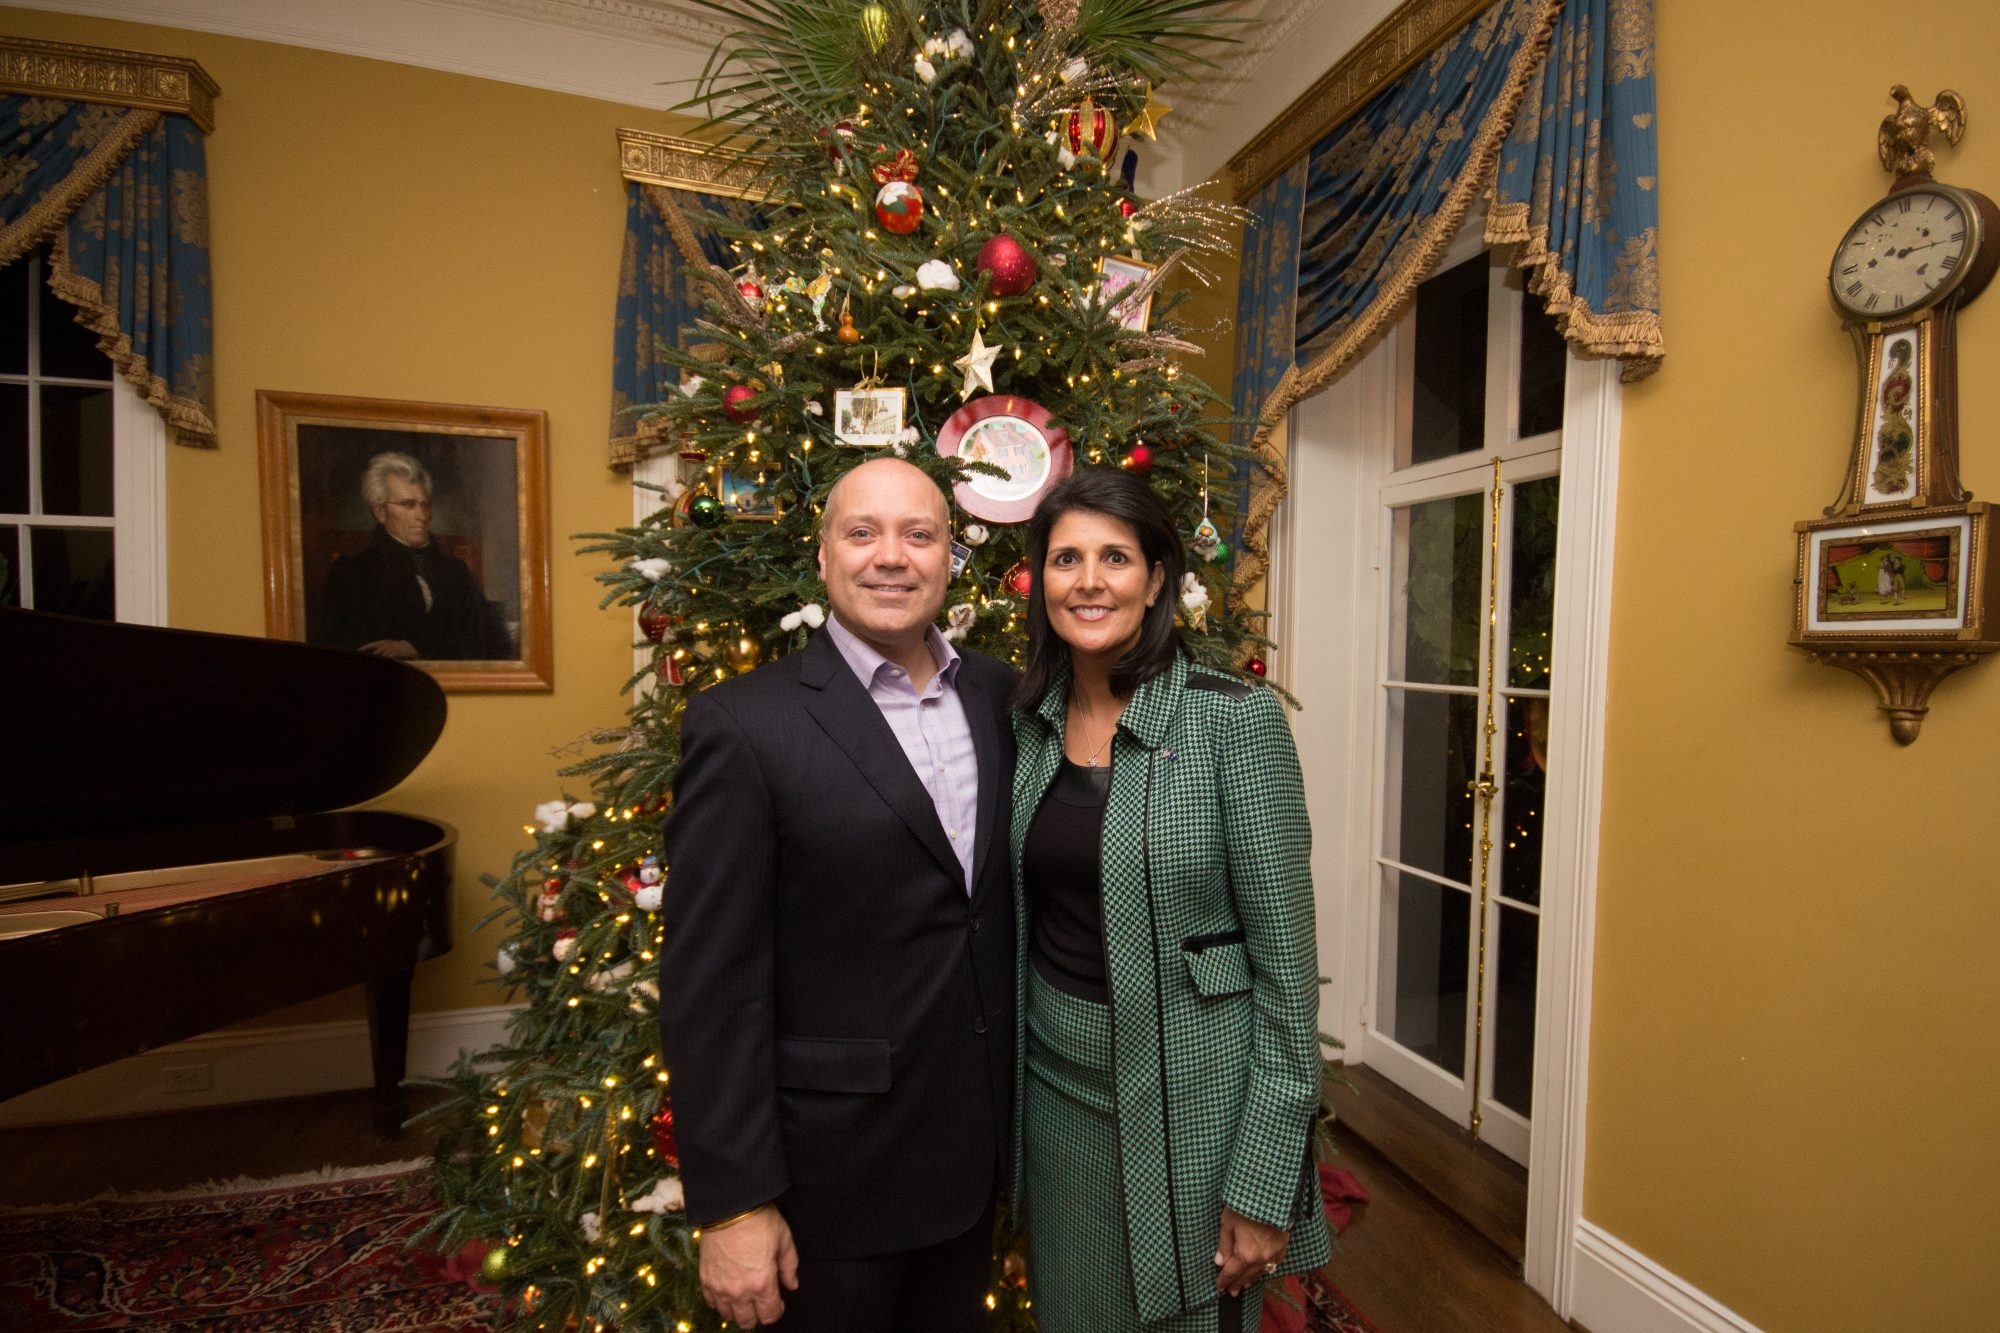 South Carolina Governor's Mansion Decorations